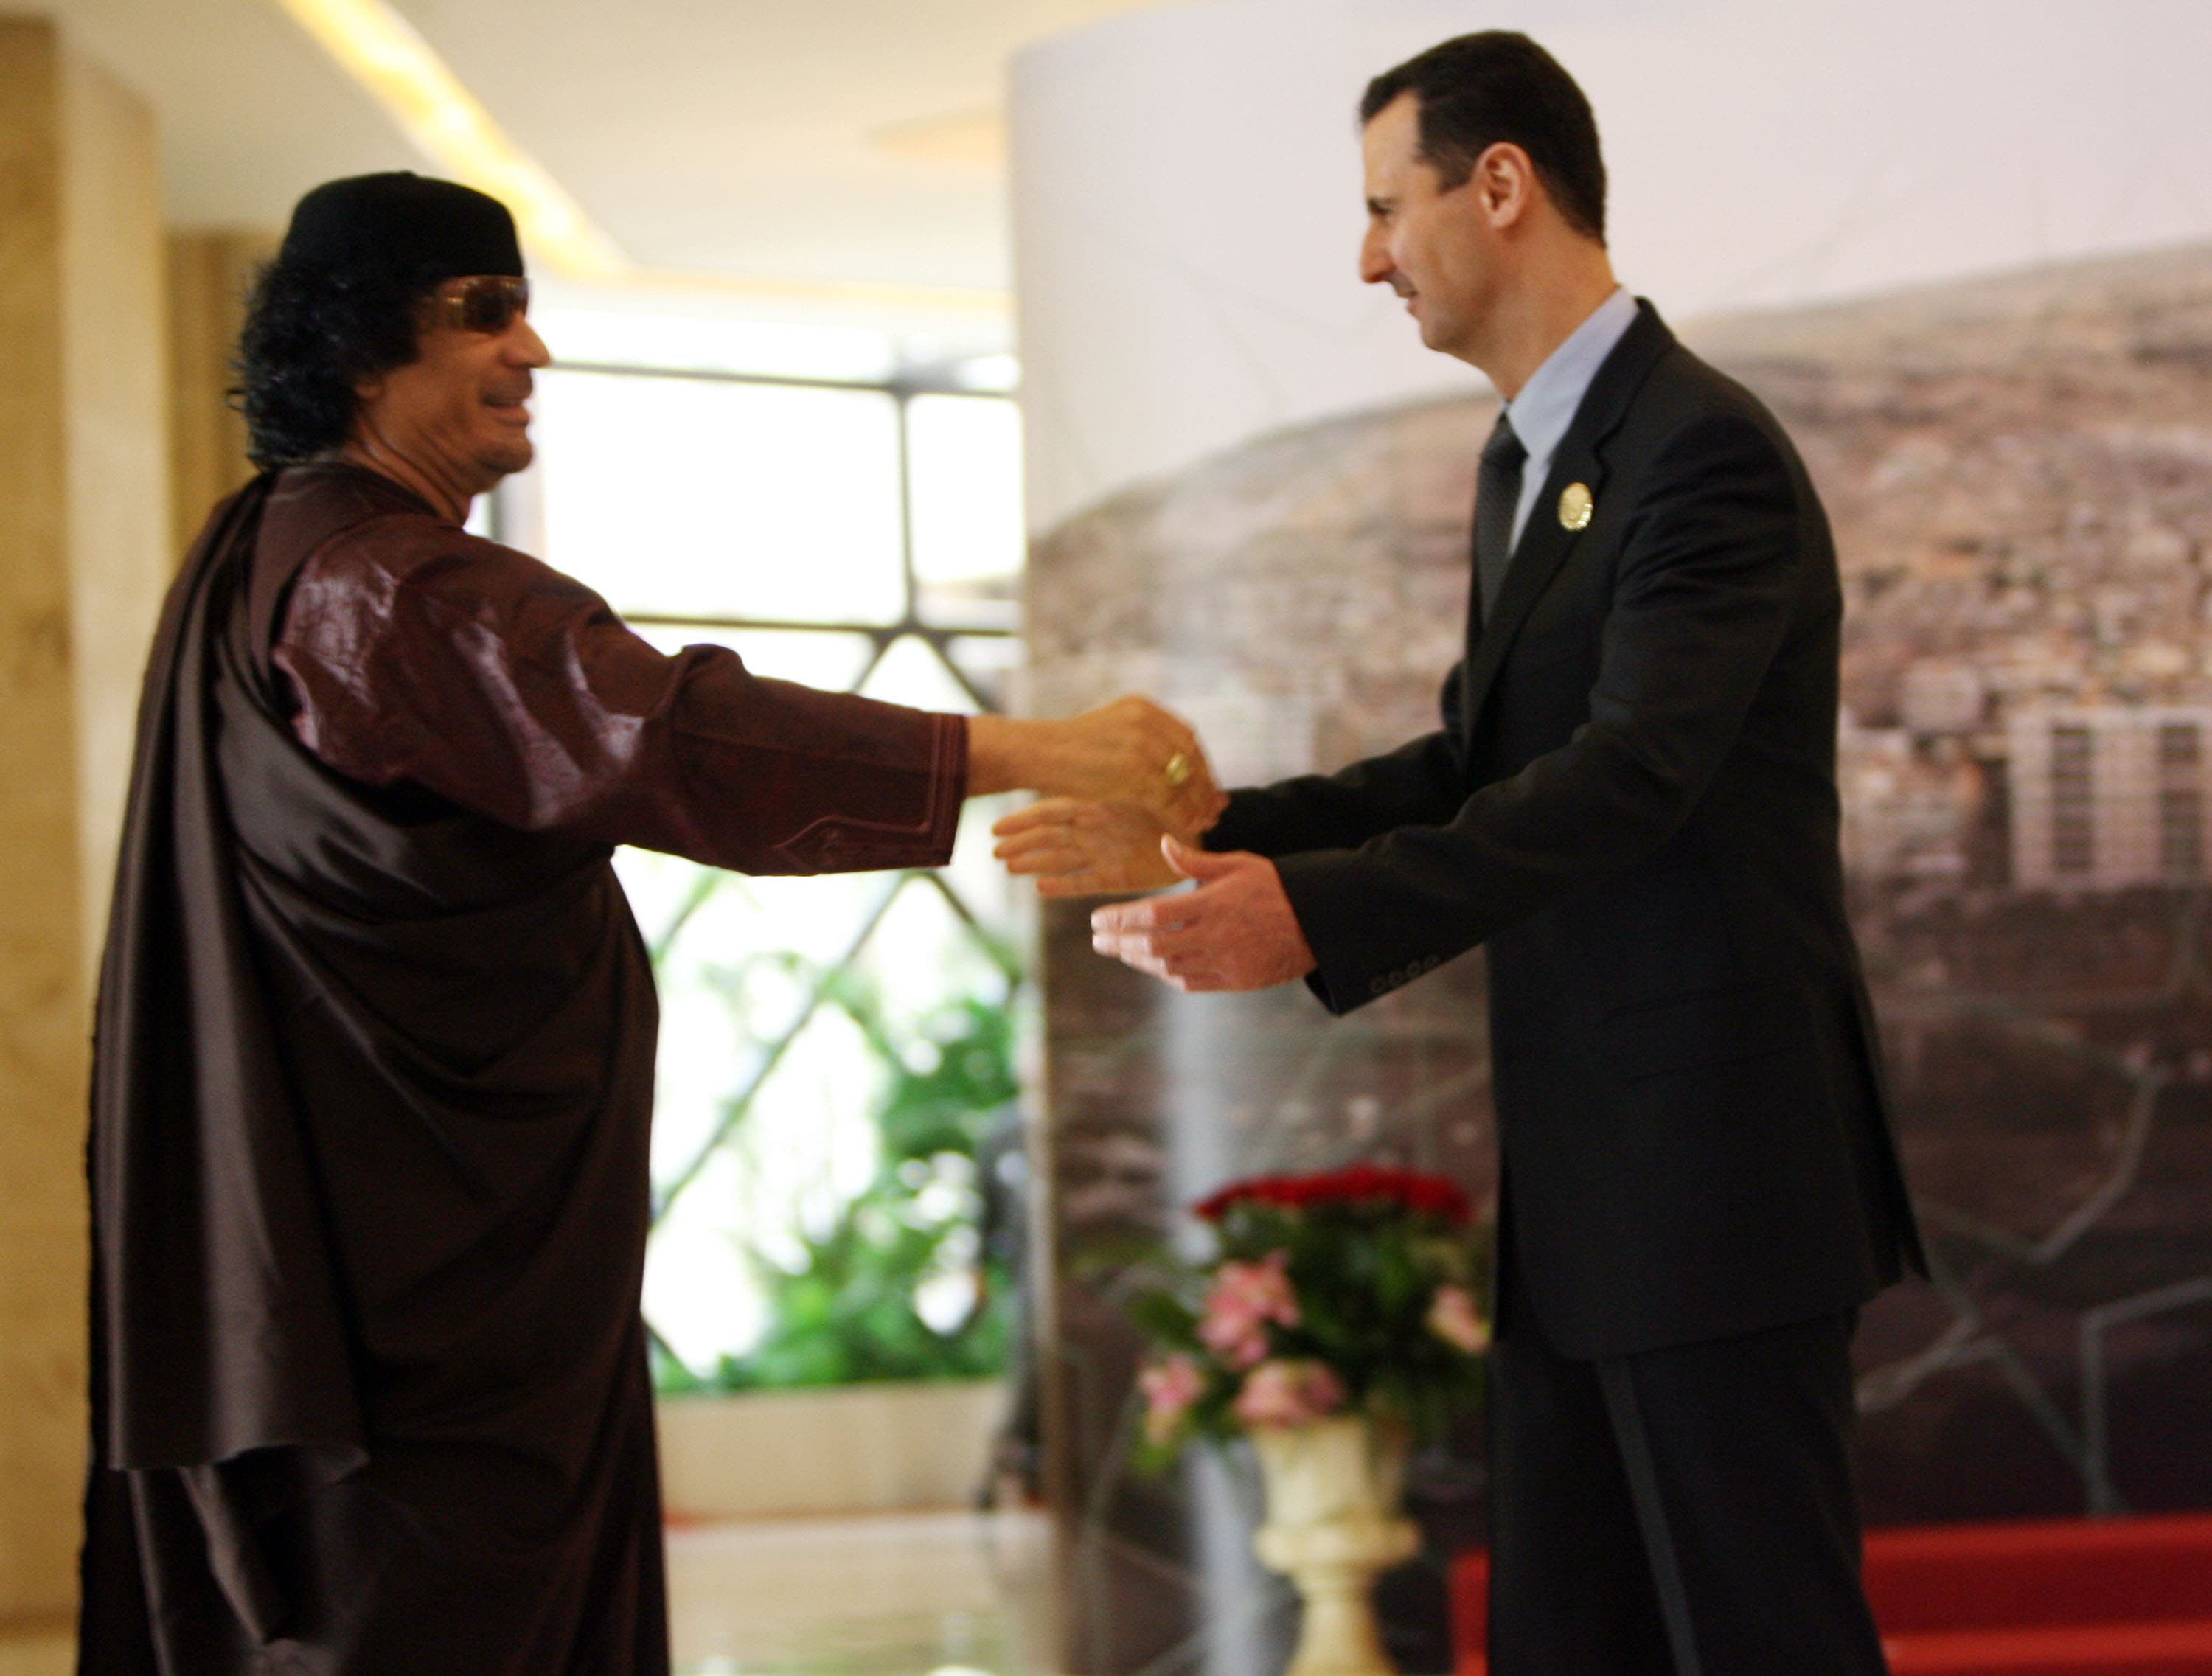 Both leaders Al-Assad and Gaddafi have seen better times. Here, they meet and greet at the Arab Summit at Damascus, 2008.